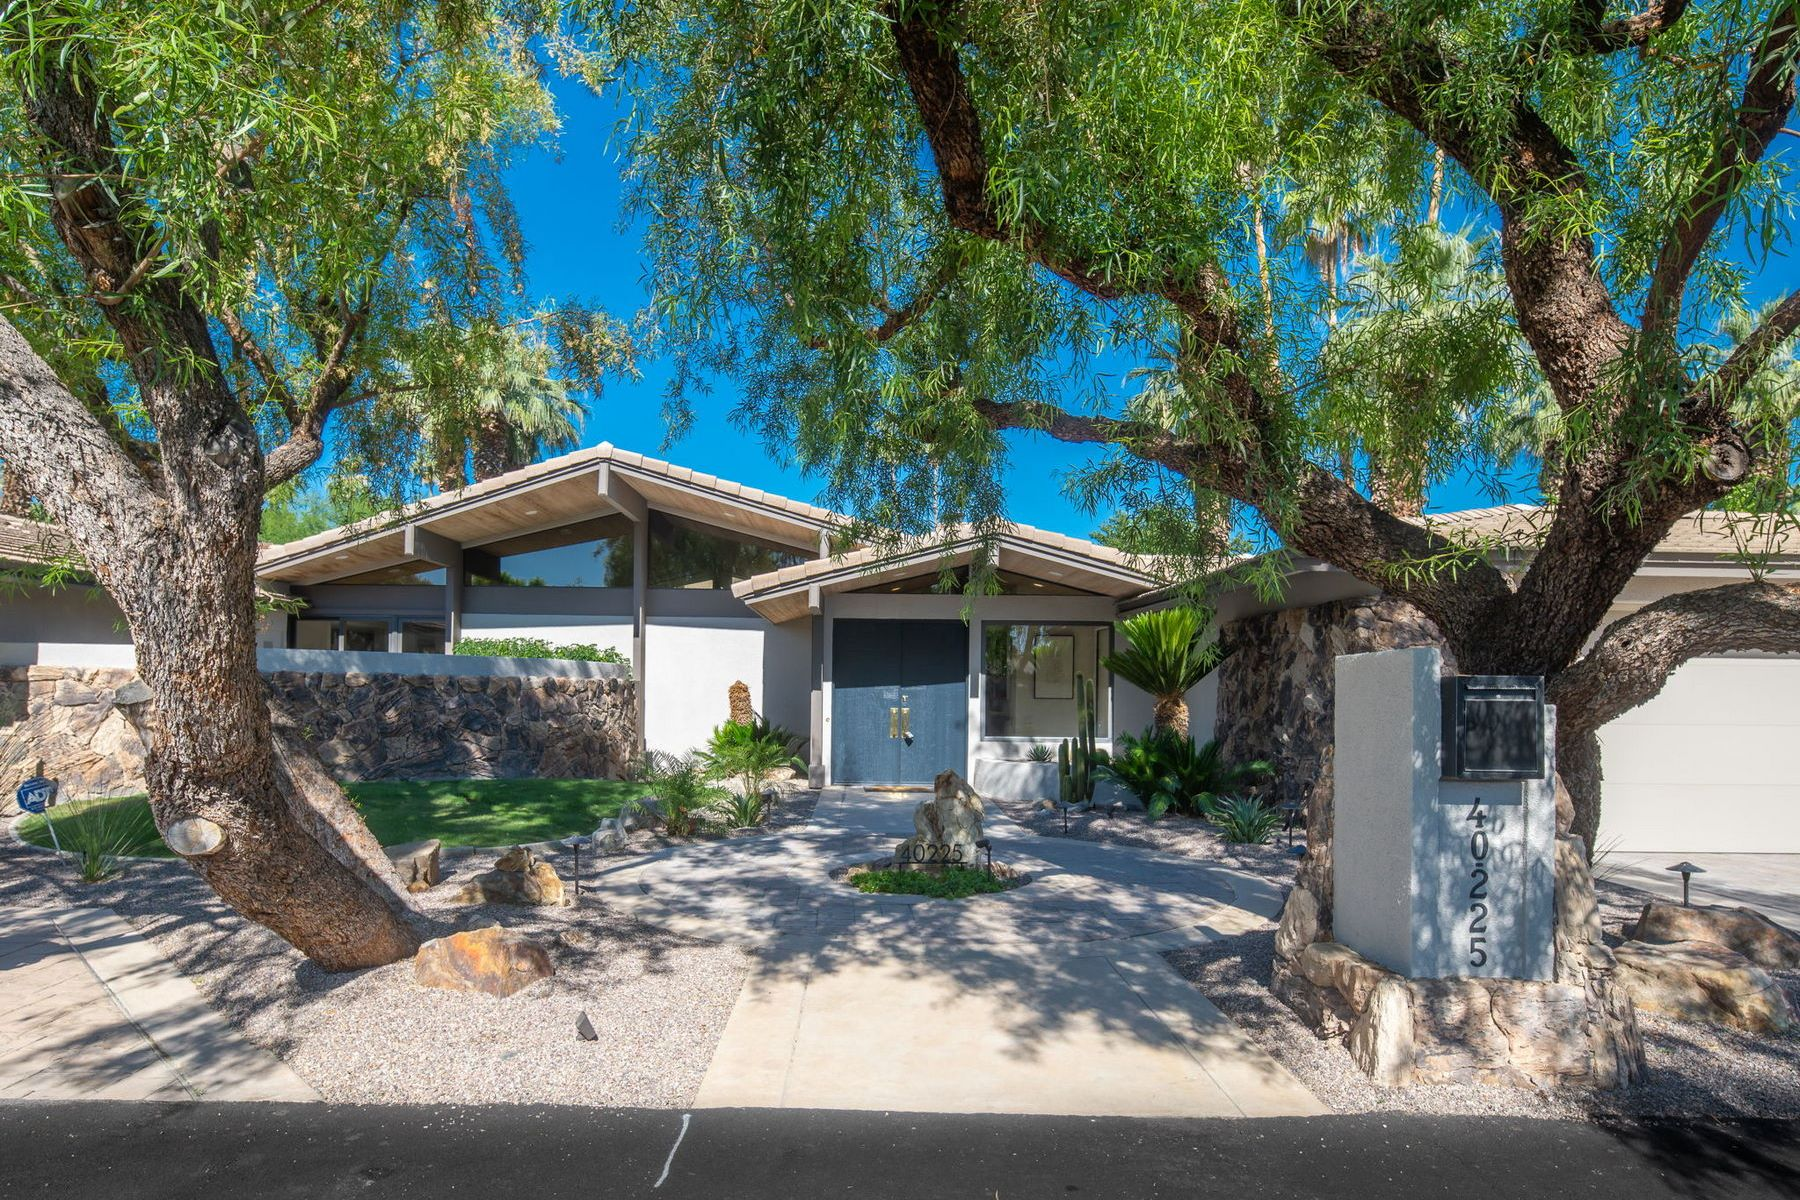 Single Family Homes for Sale at 40225 Sand Dune Rd Rancho Mirage, California 92270 United States